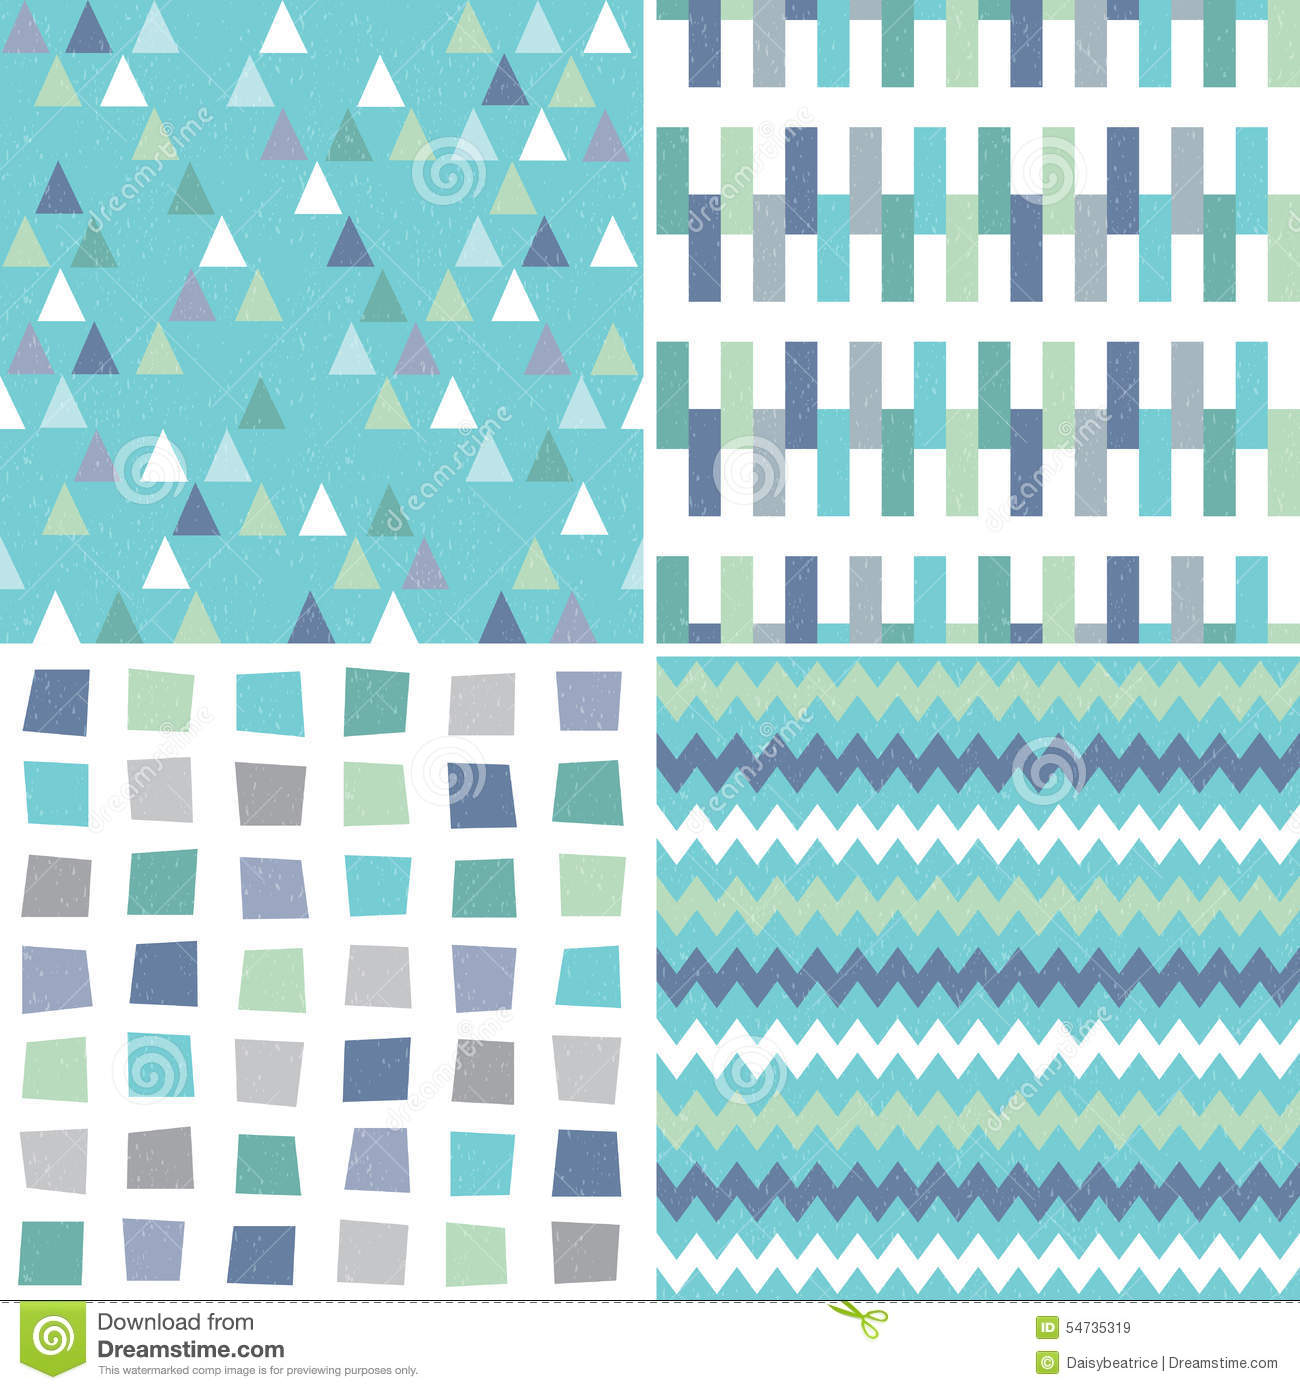 Cute Mint Green Wallpaper Seamless Hipster Geometric Patterns In Aqua Blue And Gray